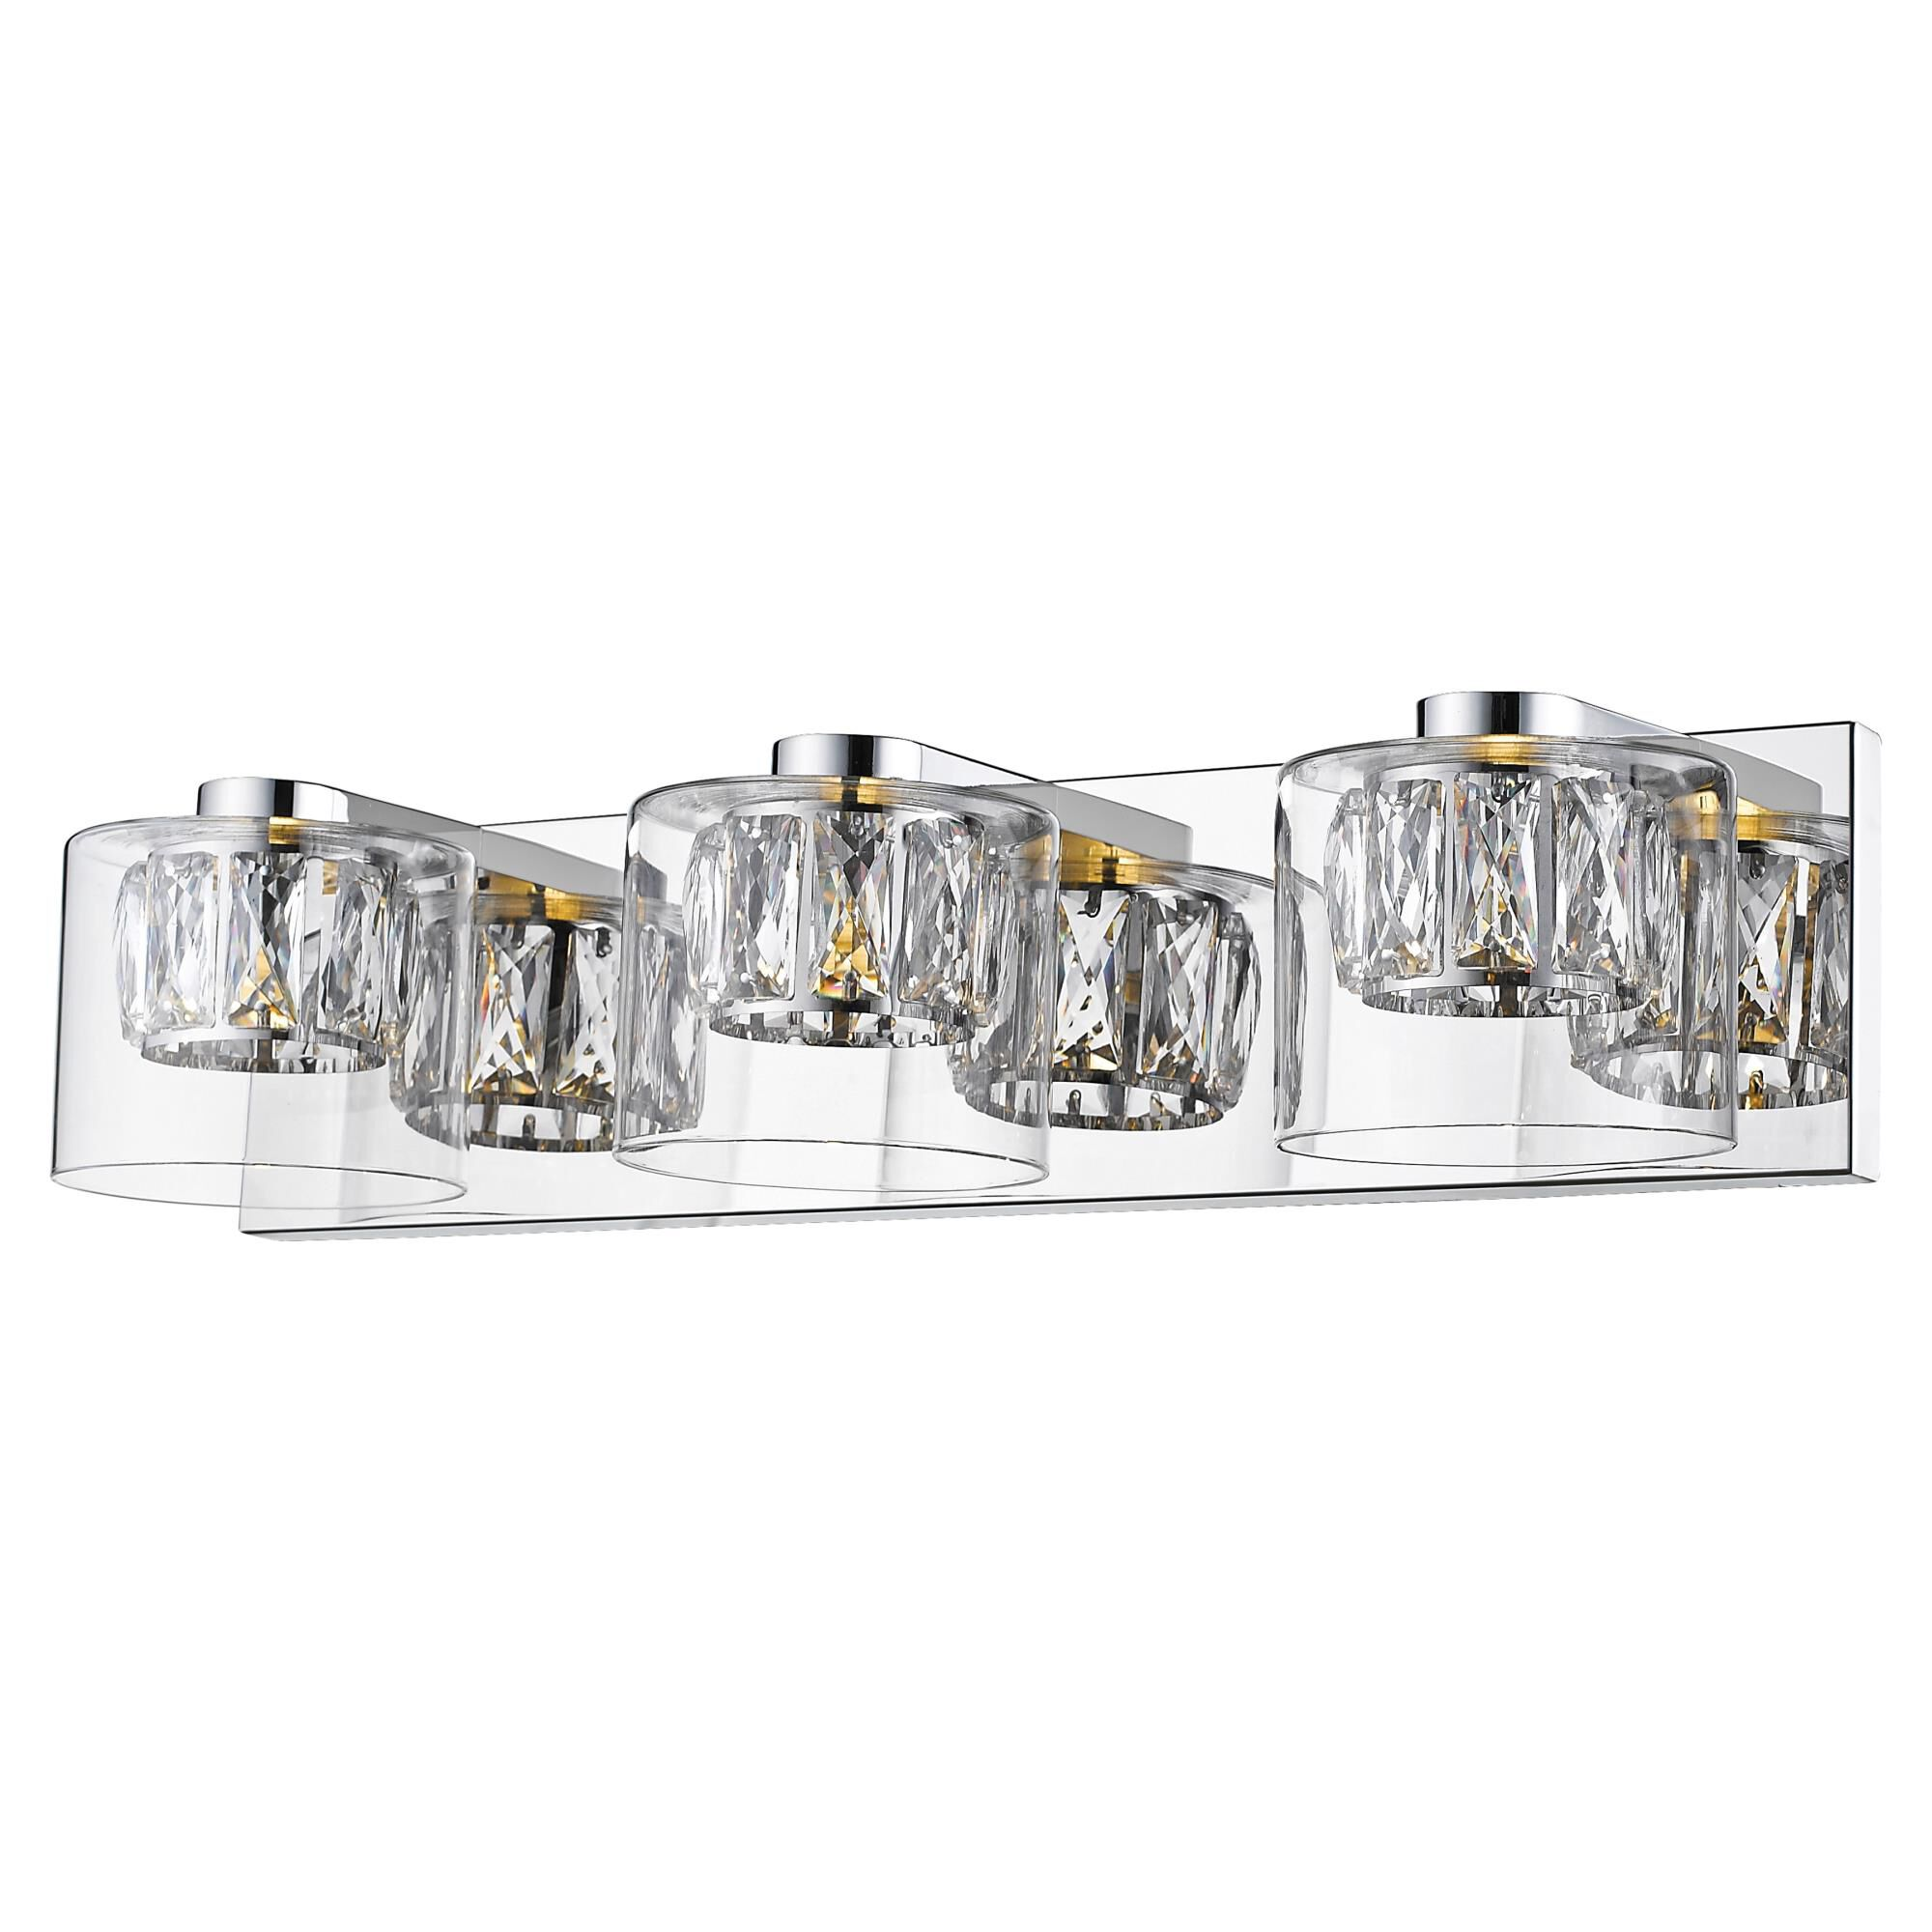 Access Lighting Private Collection 20 Inch 3 Light LED Bath Vanity Light Private Collection 62556LEDD MSSCCLCLR Crystal